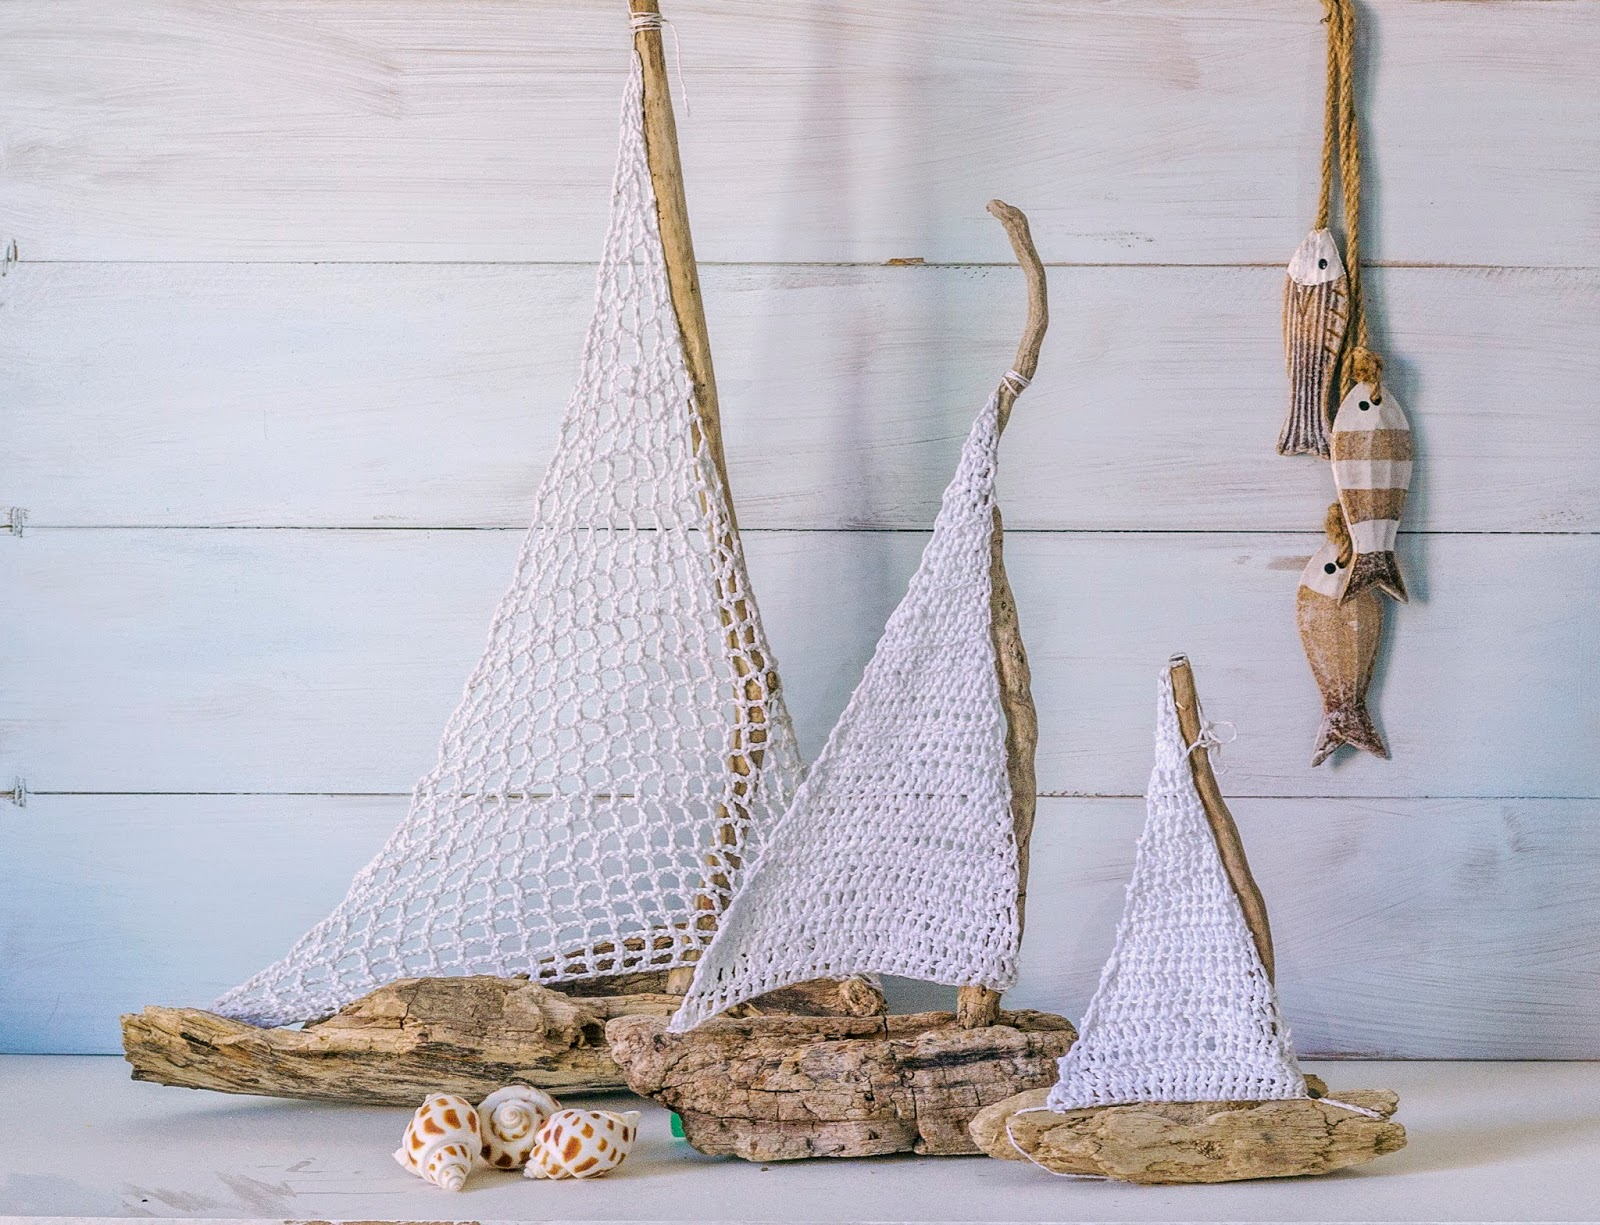 Vicky 39 s home diy barcos con madera a la deriva y crochet for Diy driftwood sailboat